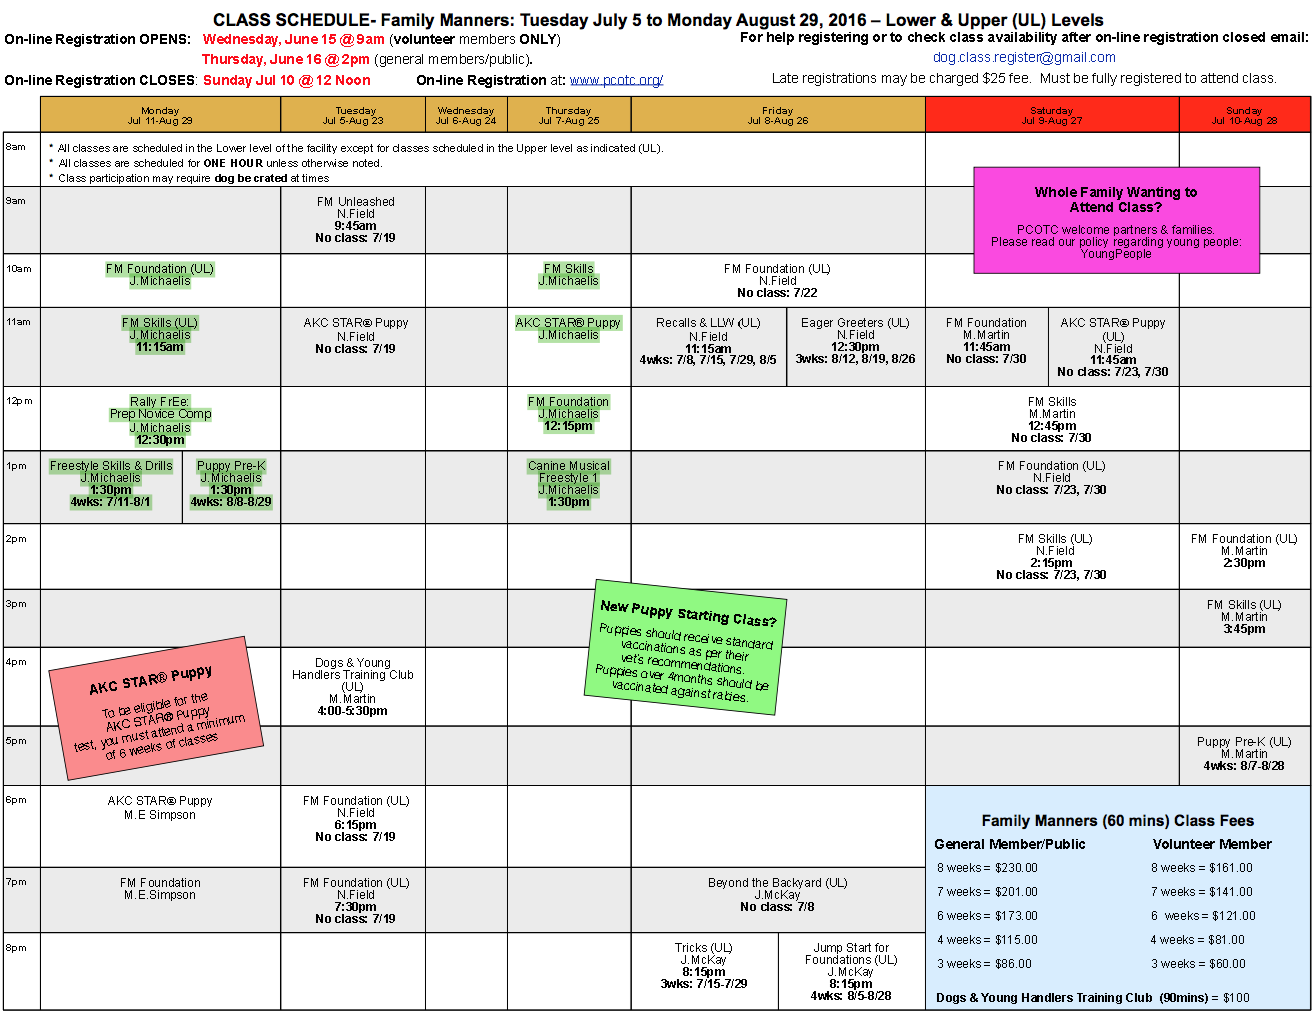 Jenn Michaelis' classes run Monday and Thursday 10-2:30pm. Highlighted in green.